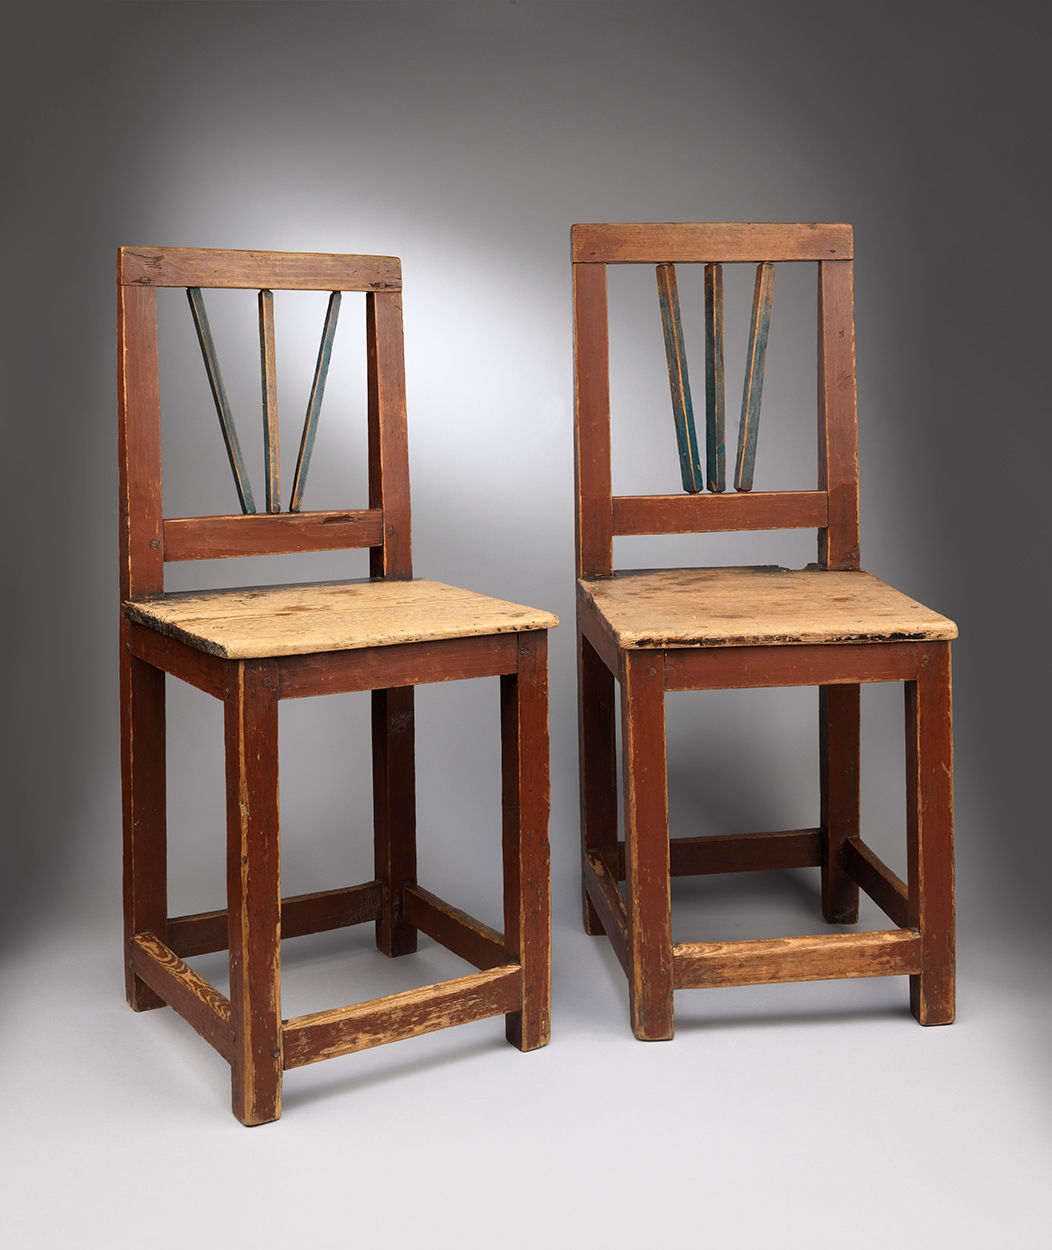 Delightful Pair of Primitive Country Side Chairs